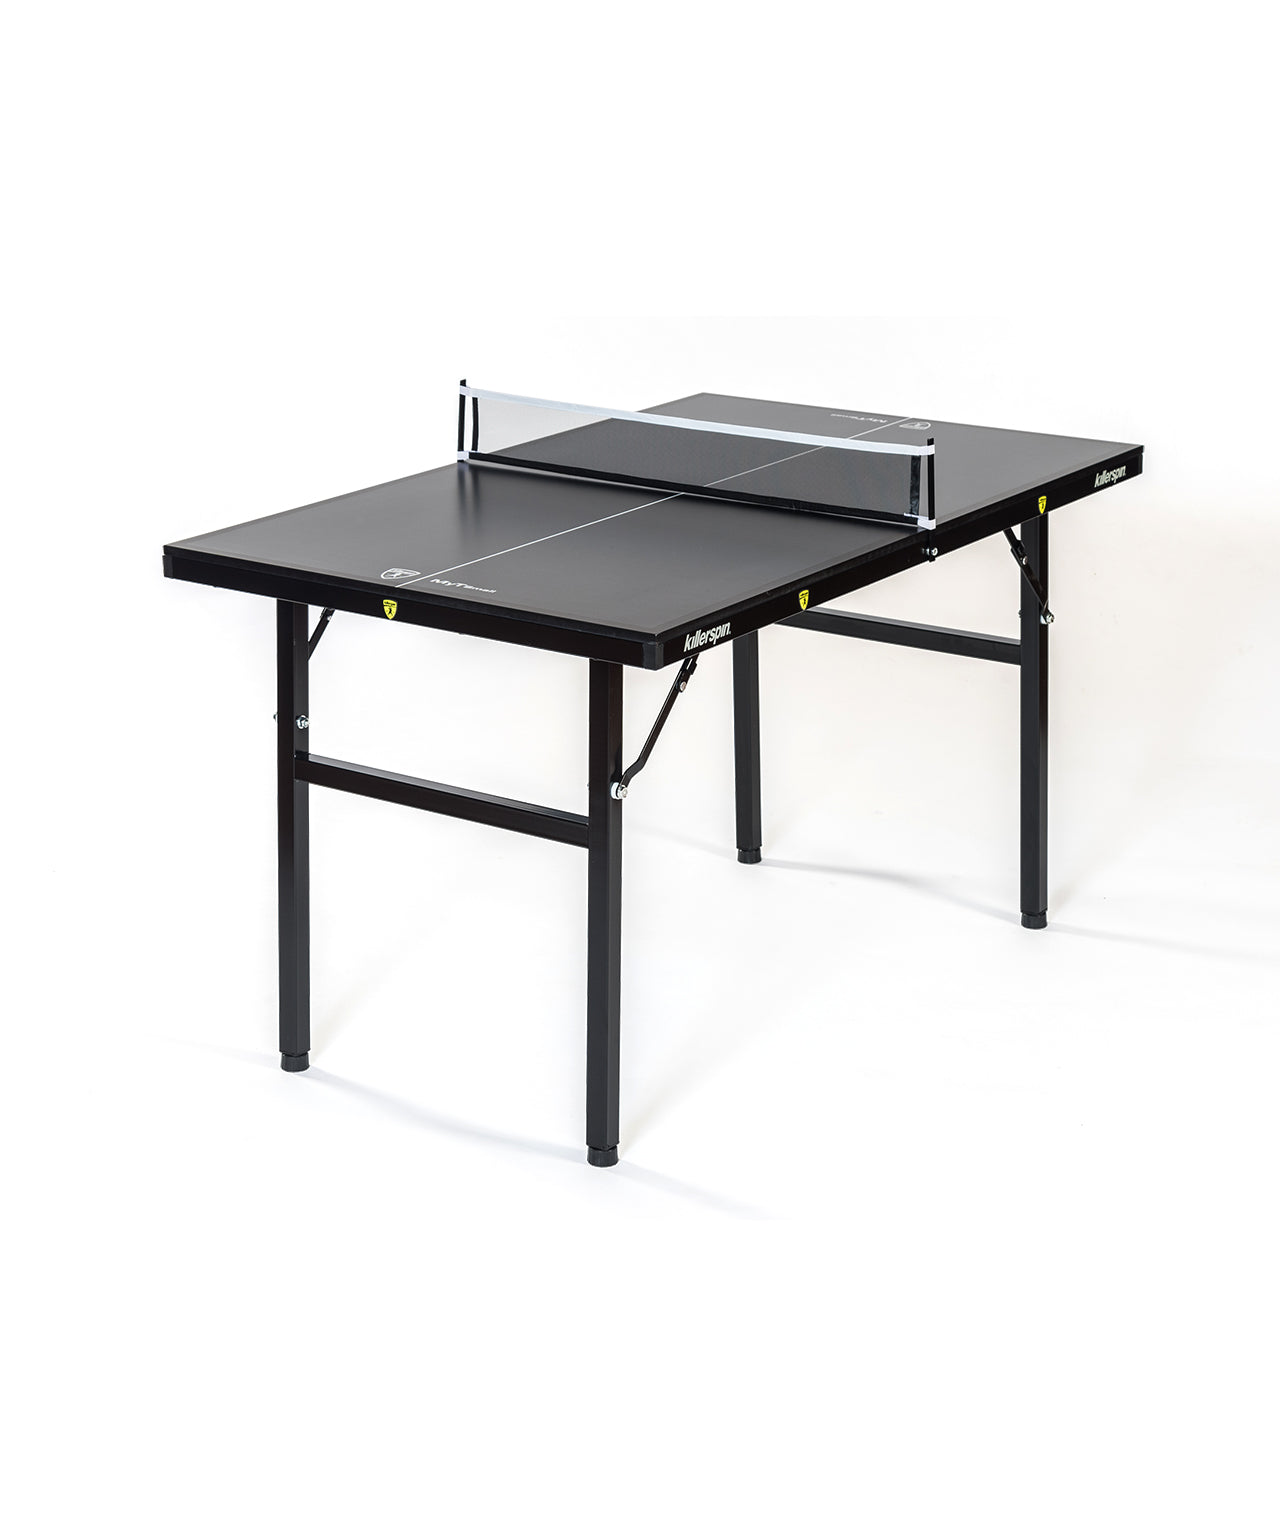 Killerspin Myt Deep Chocolate Portable Ping Pong Table